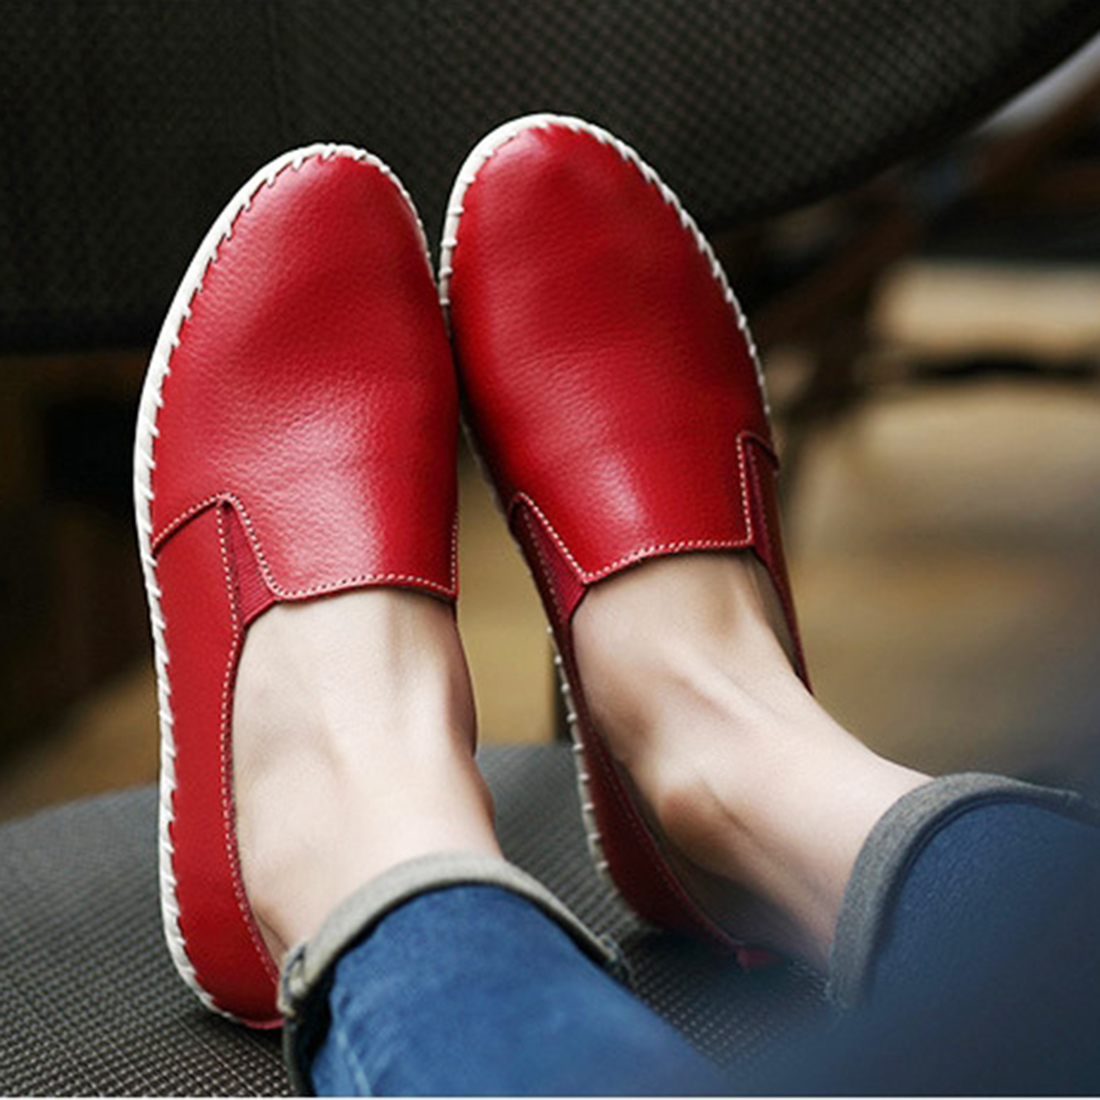 They produce all the leather used in making Ecco shoes, taking measures to protect the environment at the same time. Their sole aim is to make a comfortable walking shoe.